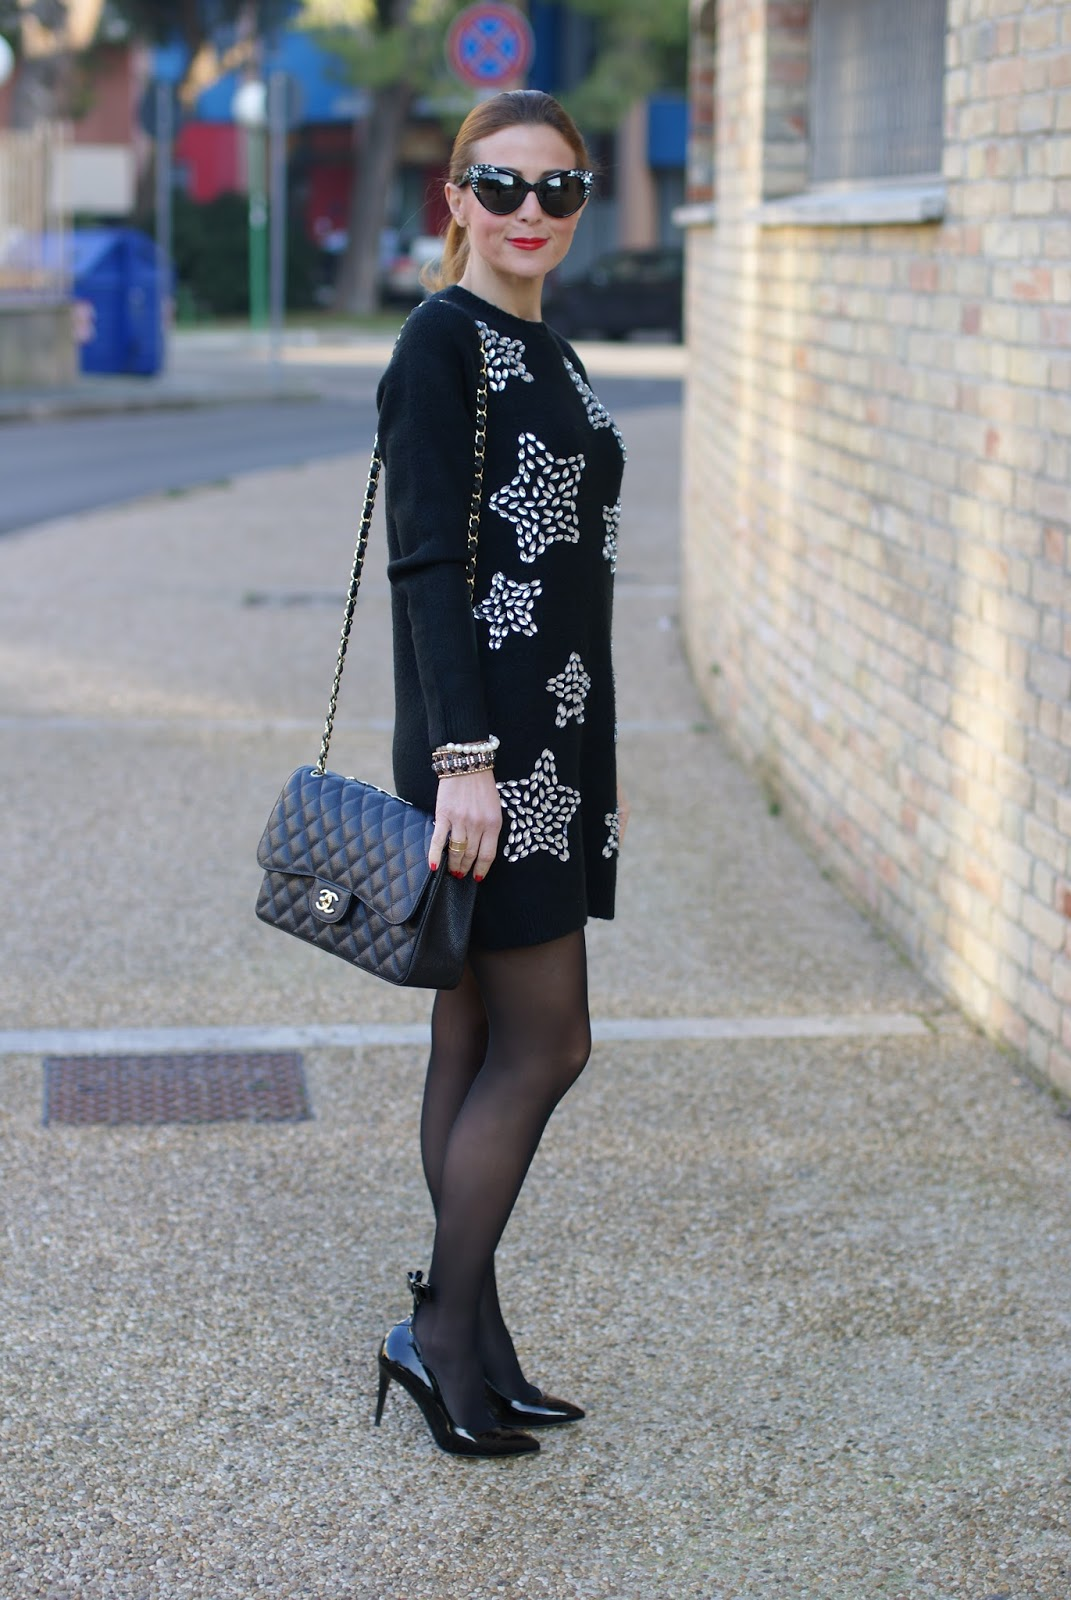 starry jeweled dress, sergio amaranti bekate heels and chanel 2.55 bag on Fashion and Cookies fashion blog, fashion blogger style